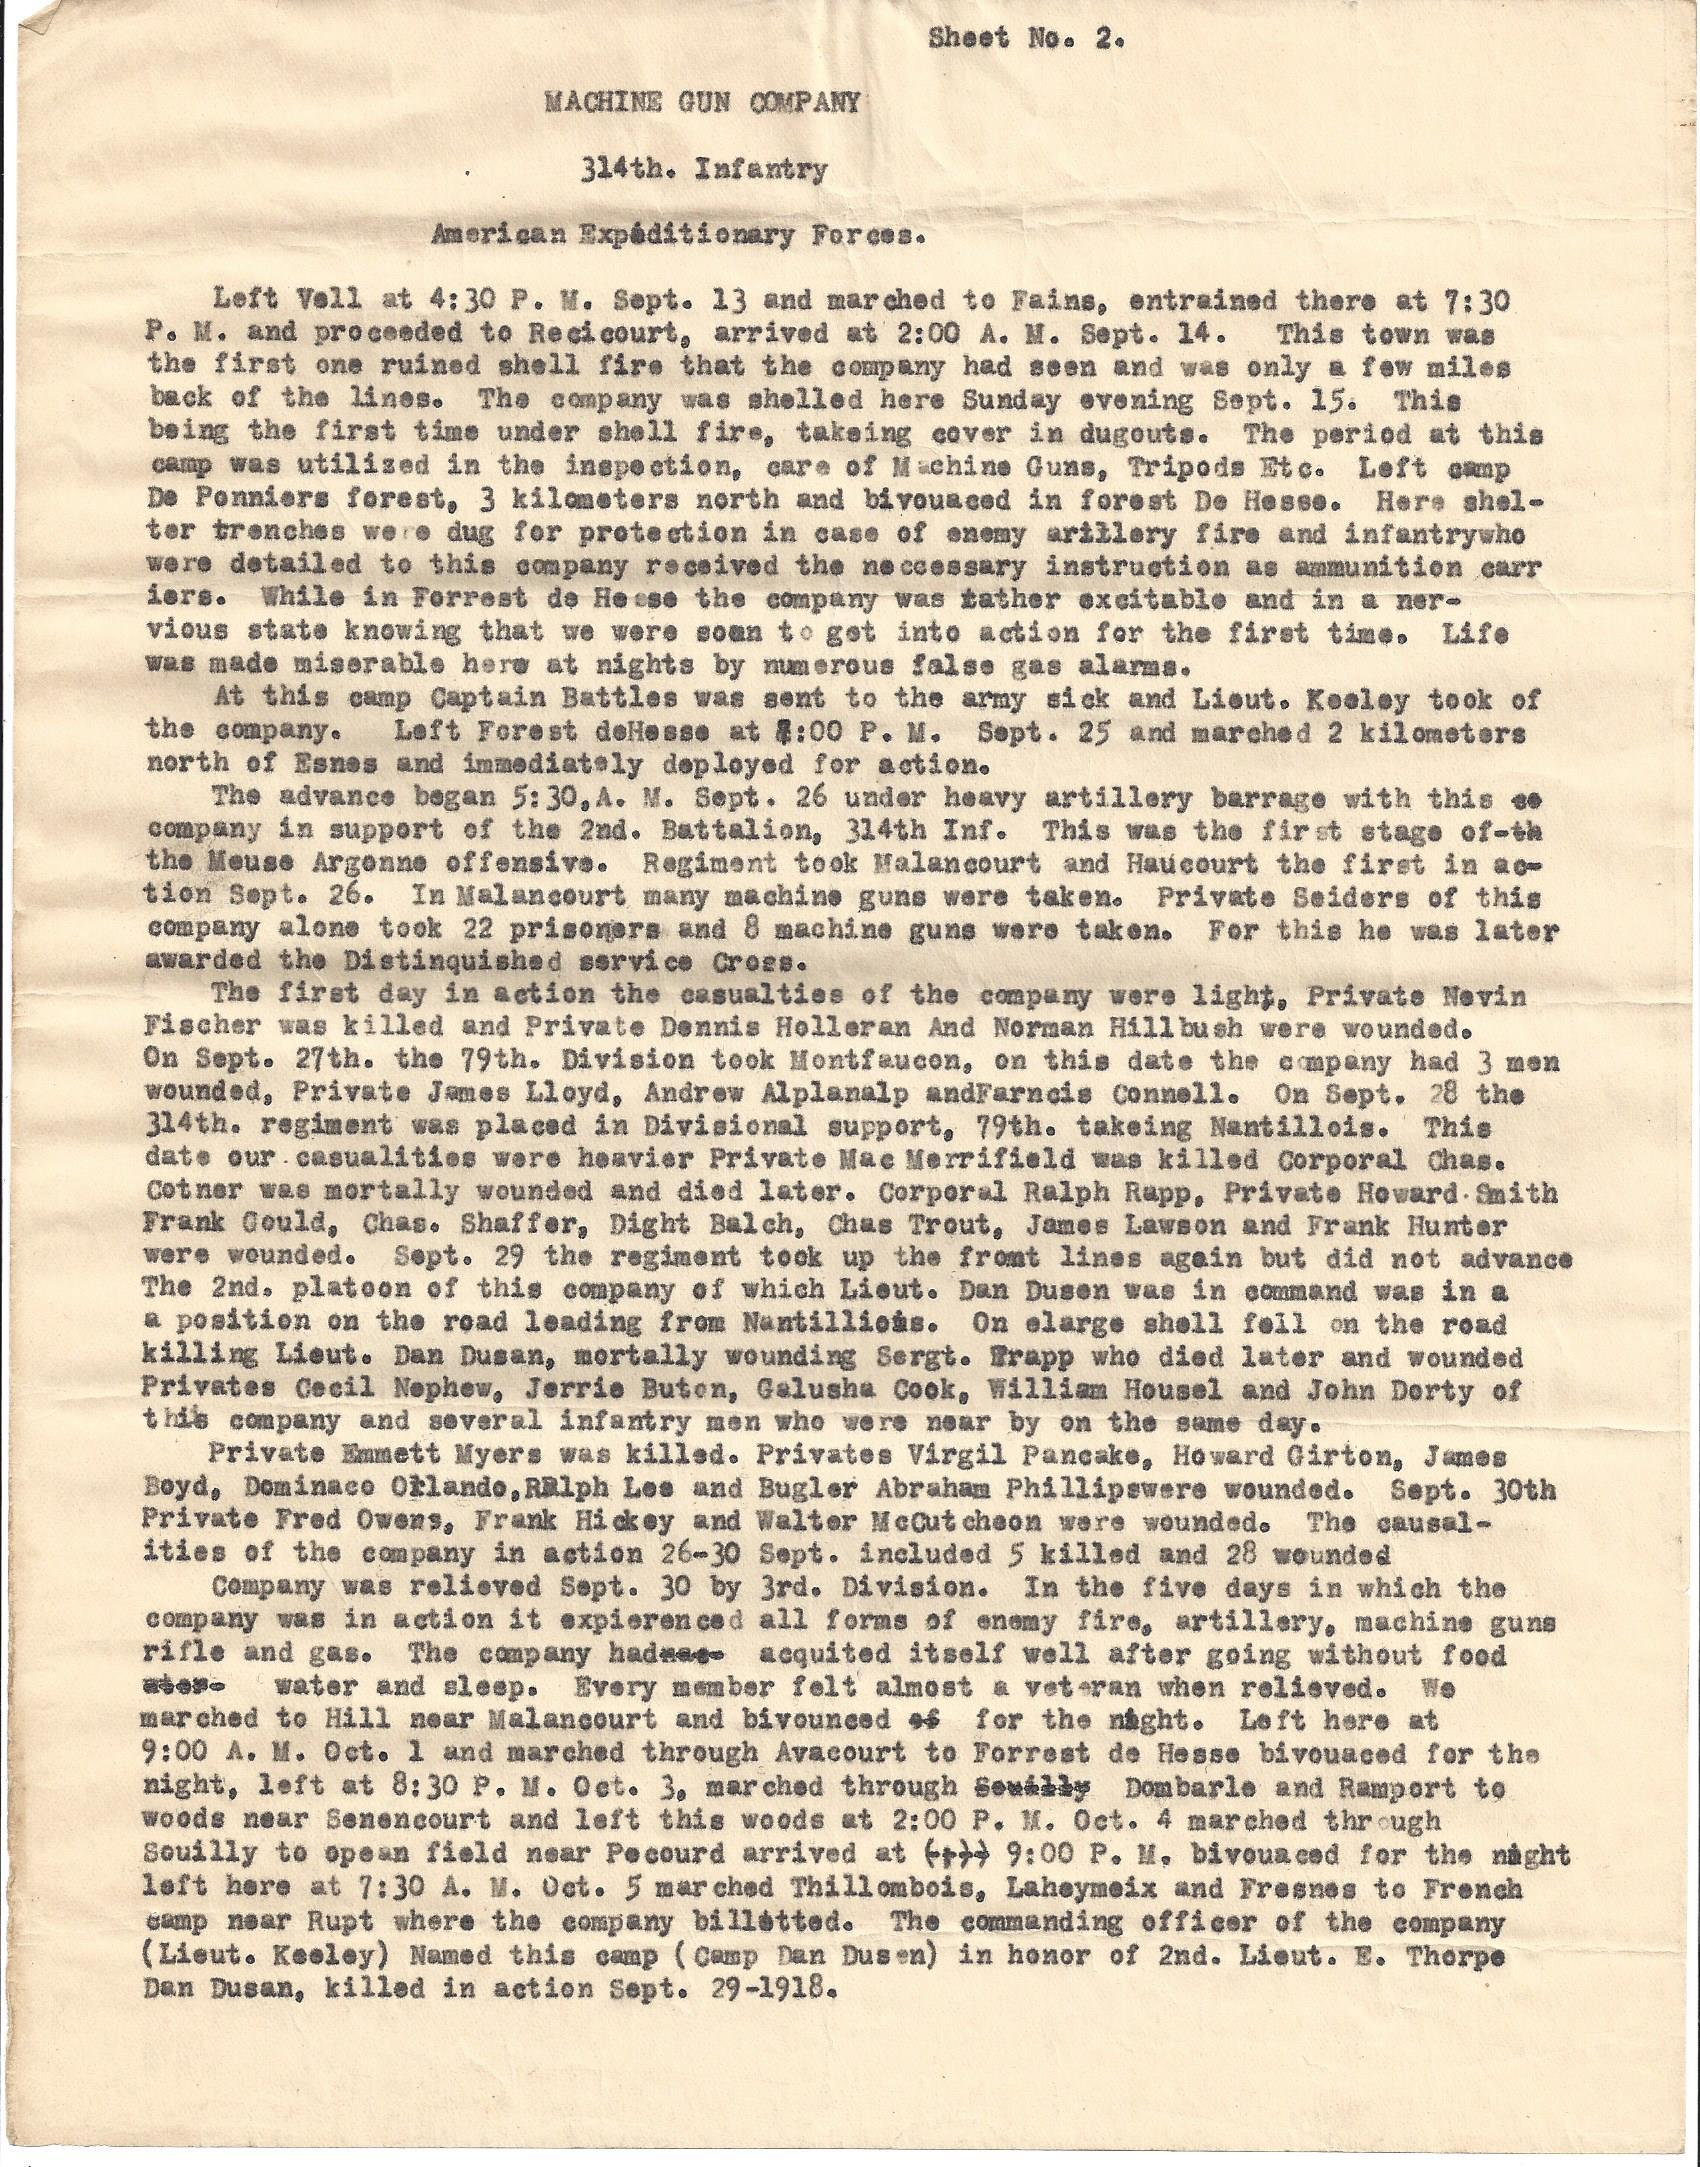 MG Company 314th Infantry AEF typewritten history page 2